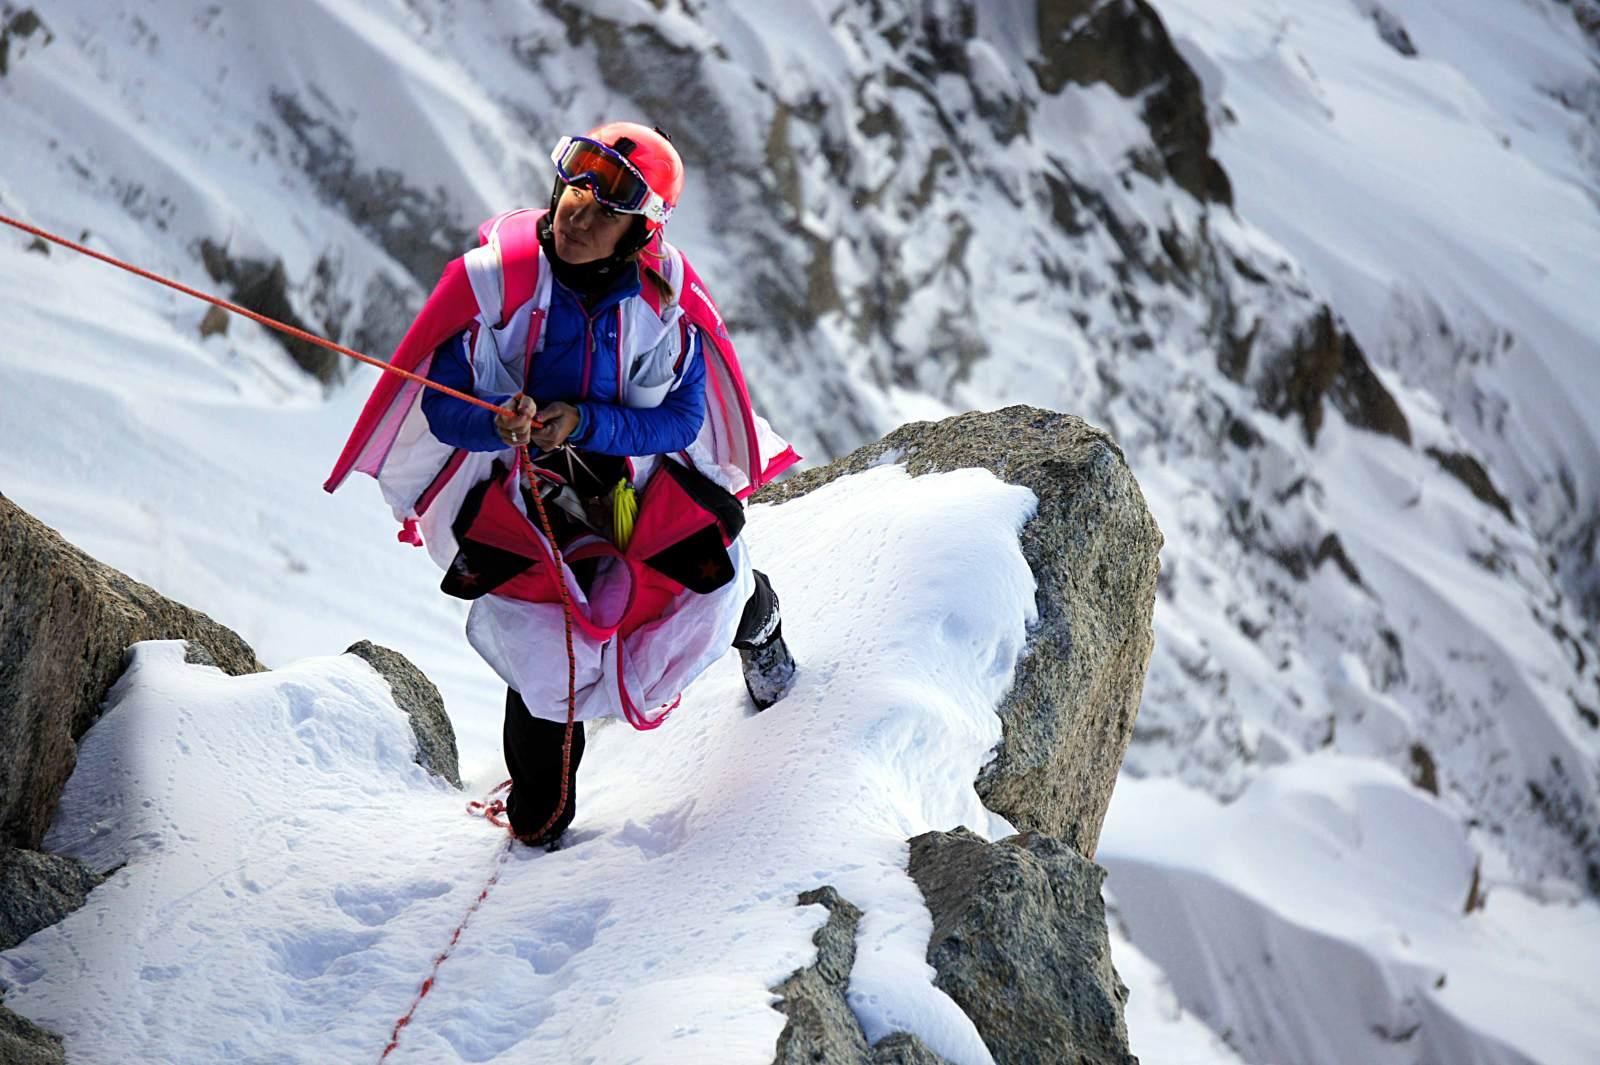 Géraldine Fasnacht climbing up a mountain